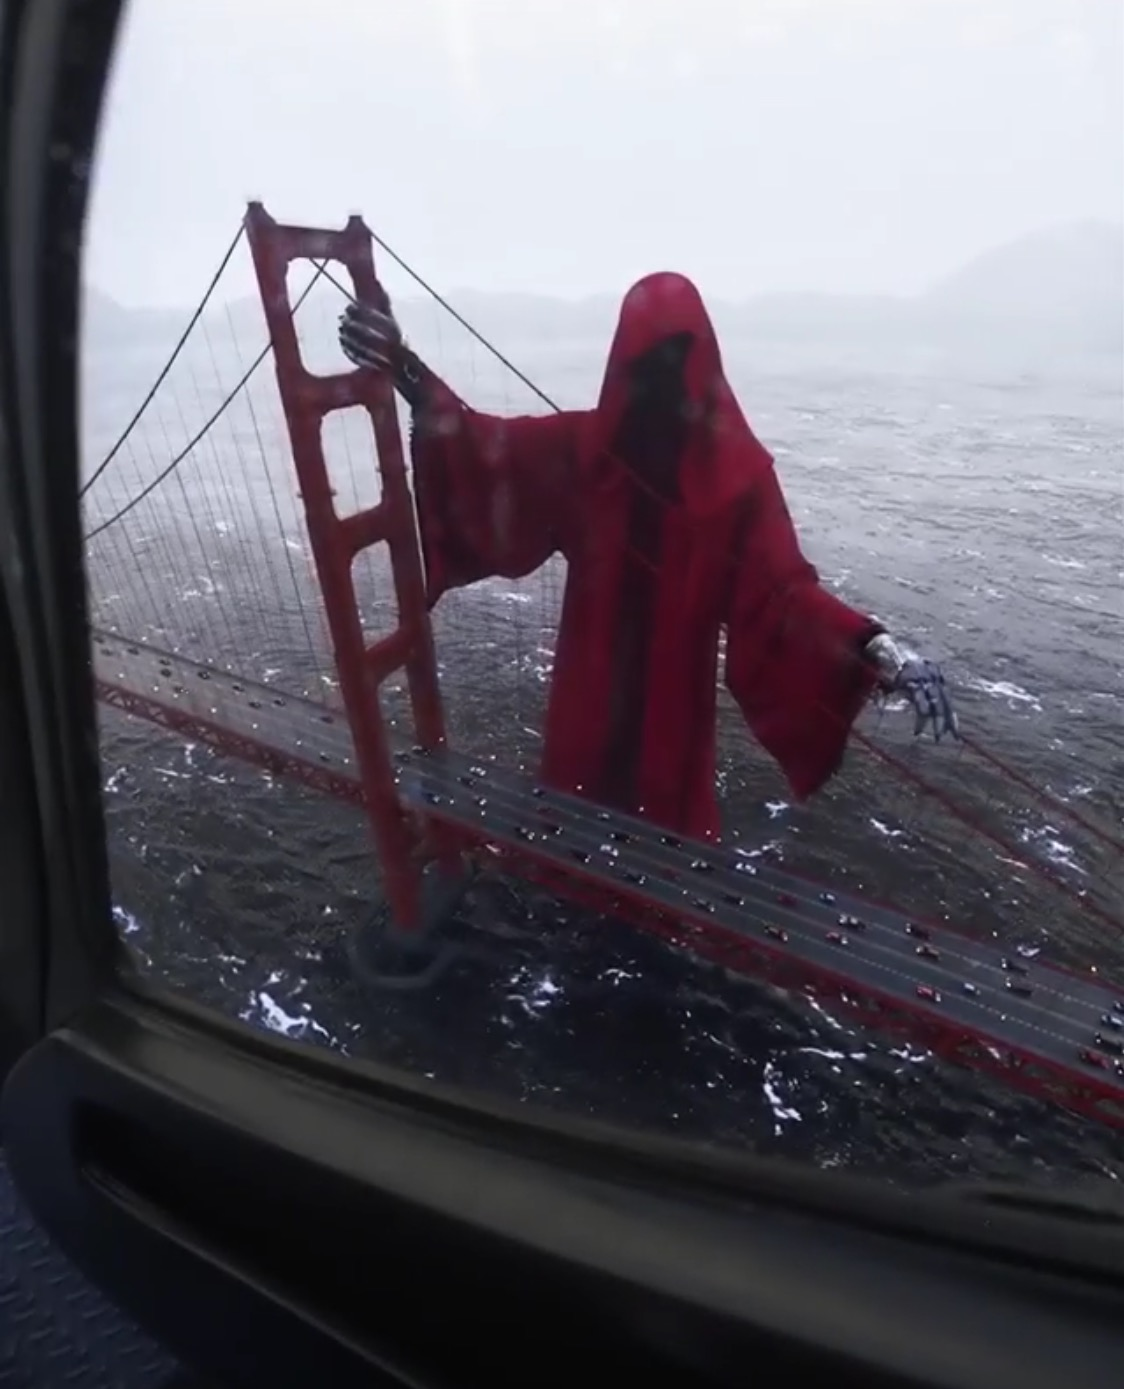 Grim Reaper on Golden Gate Bridge creeps out the Internet